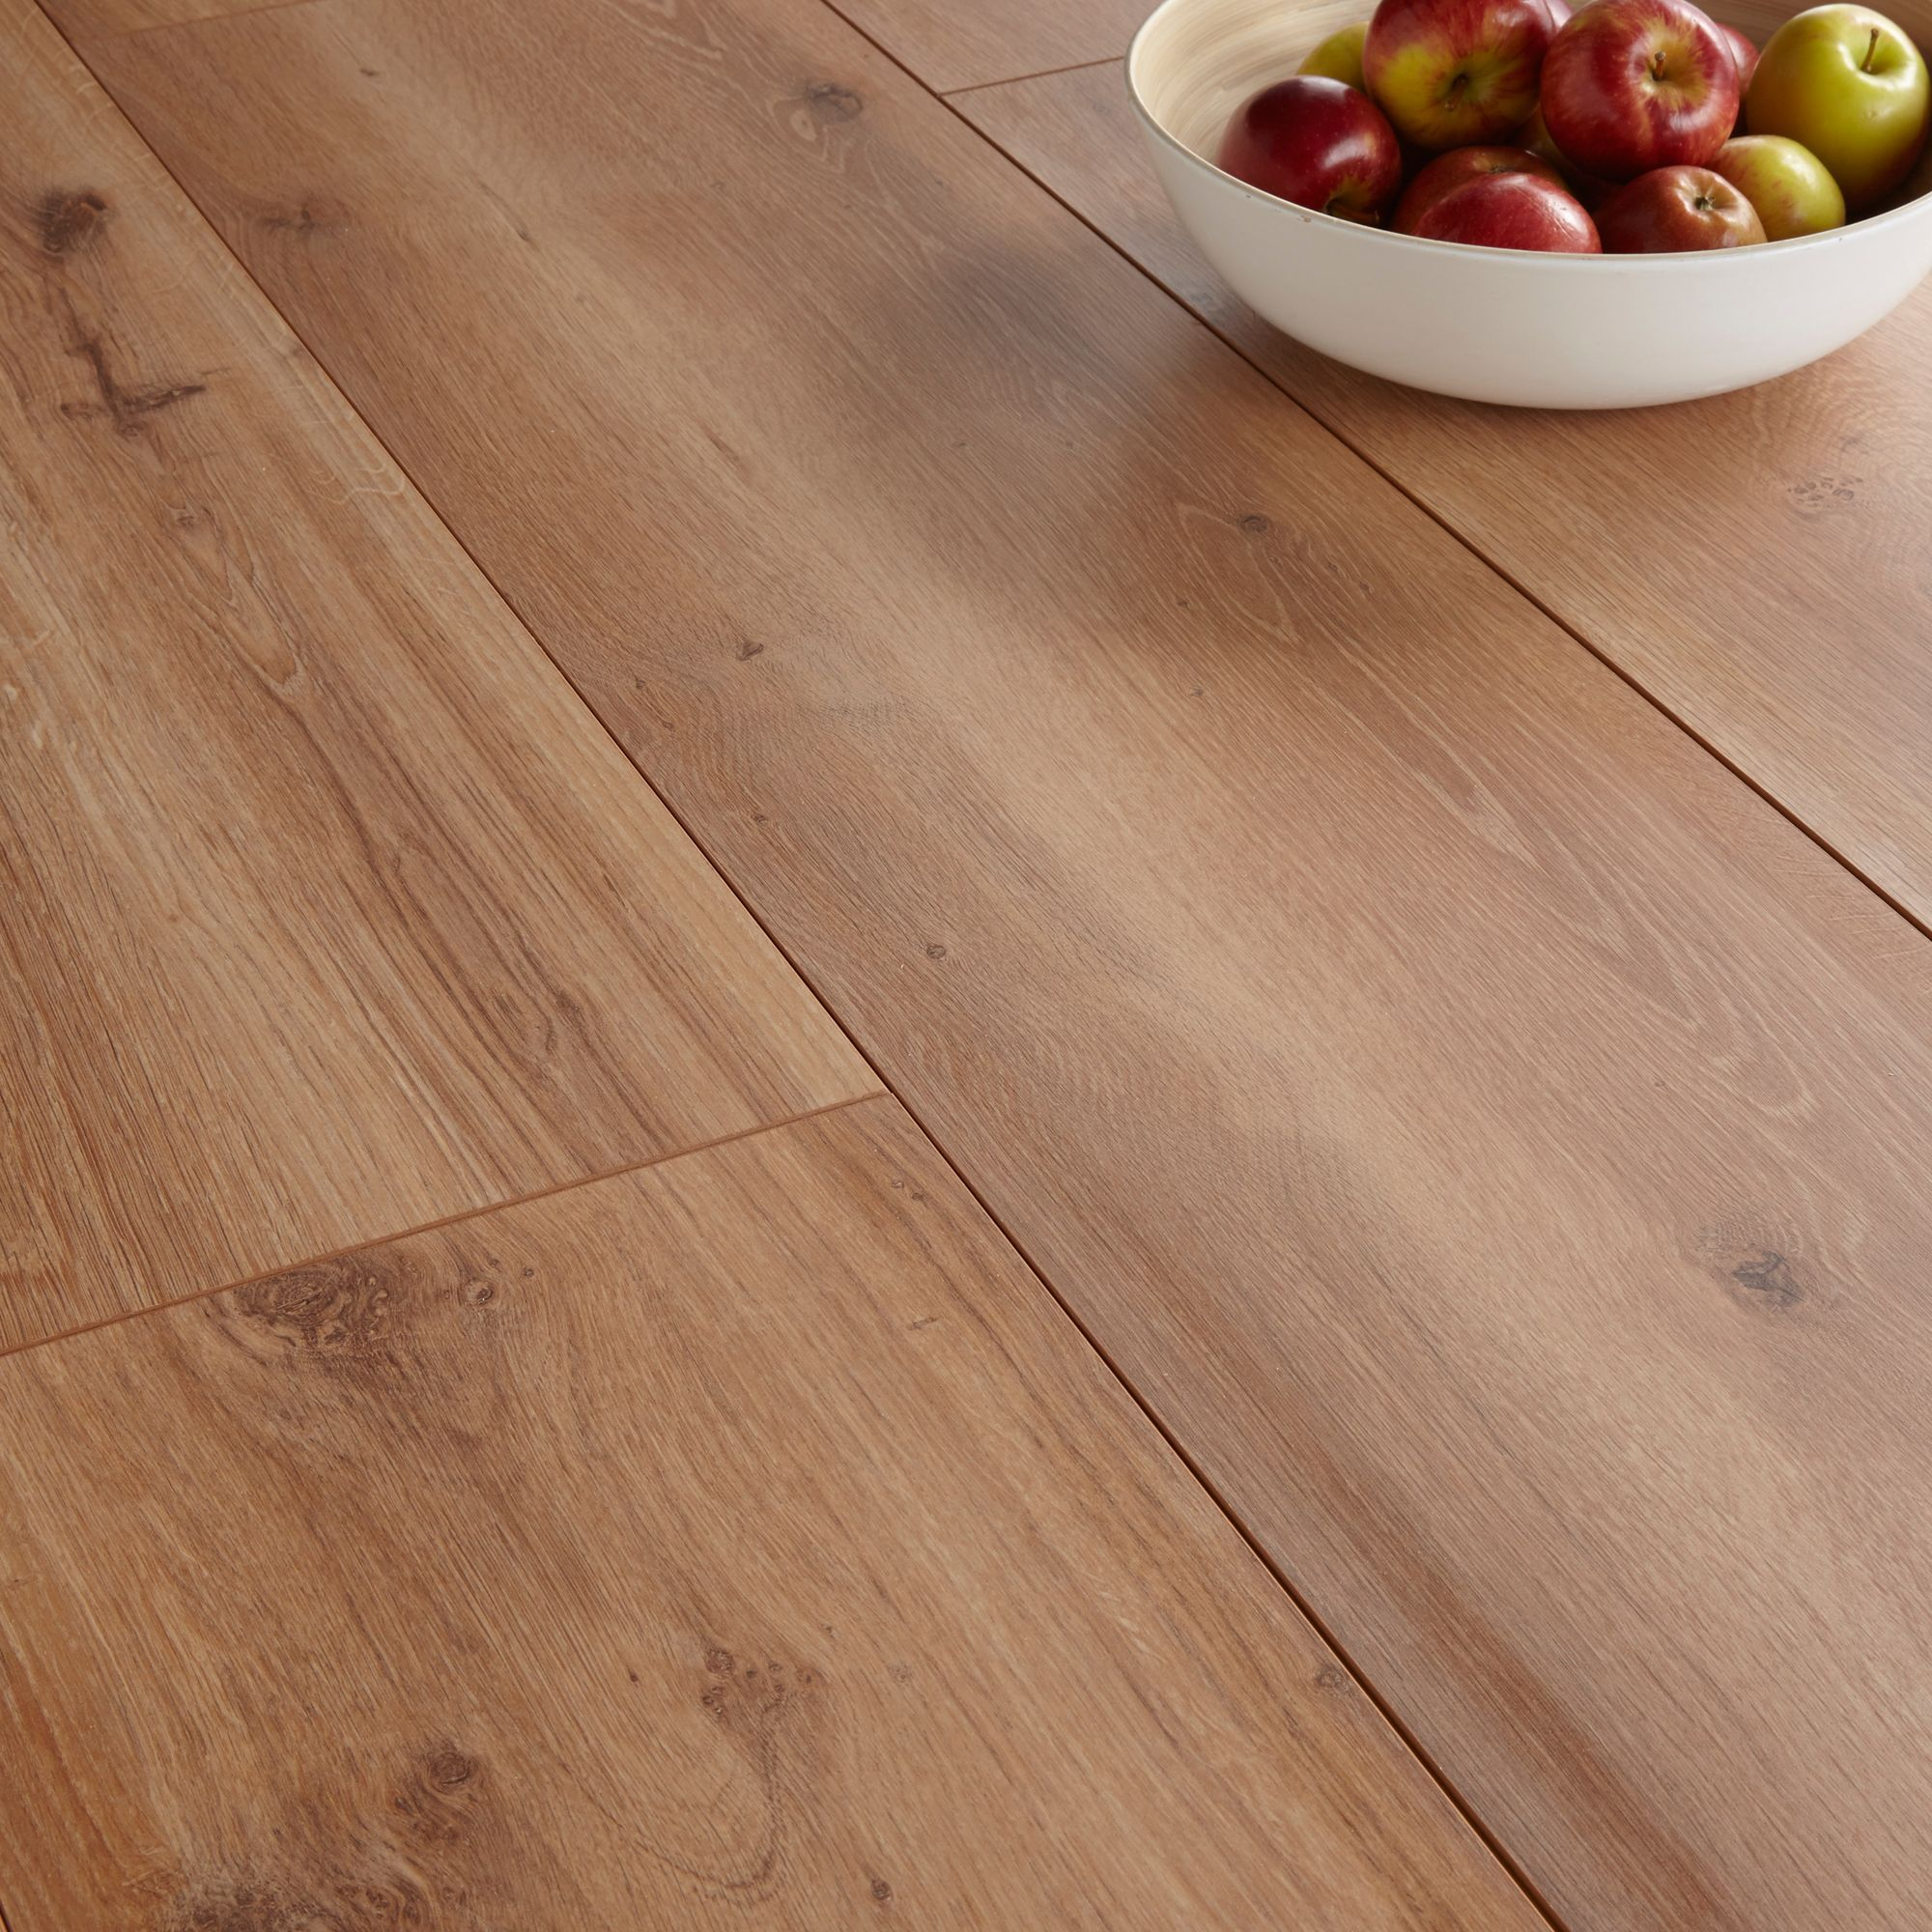 Princeps montana oak effect wide plank laminate flooring 1 for Wide plank laminate flooring